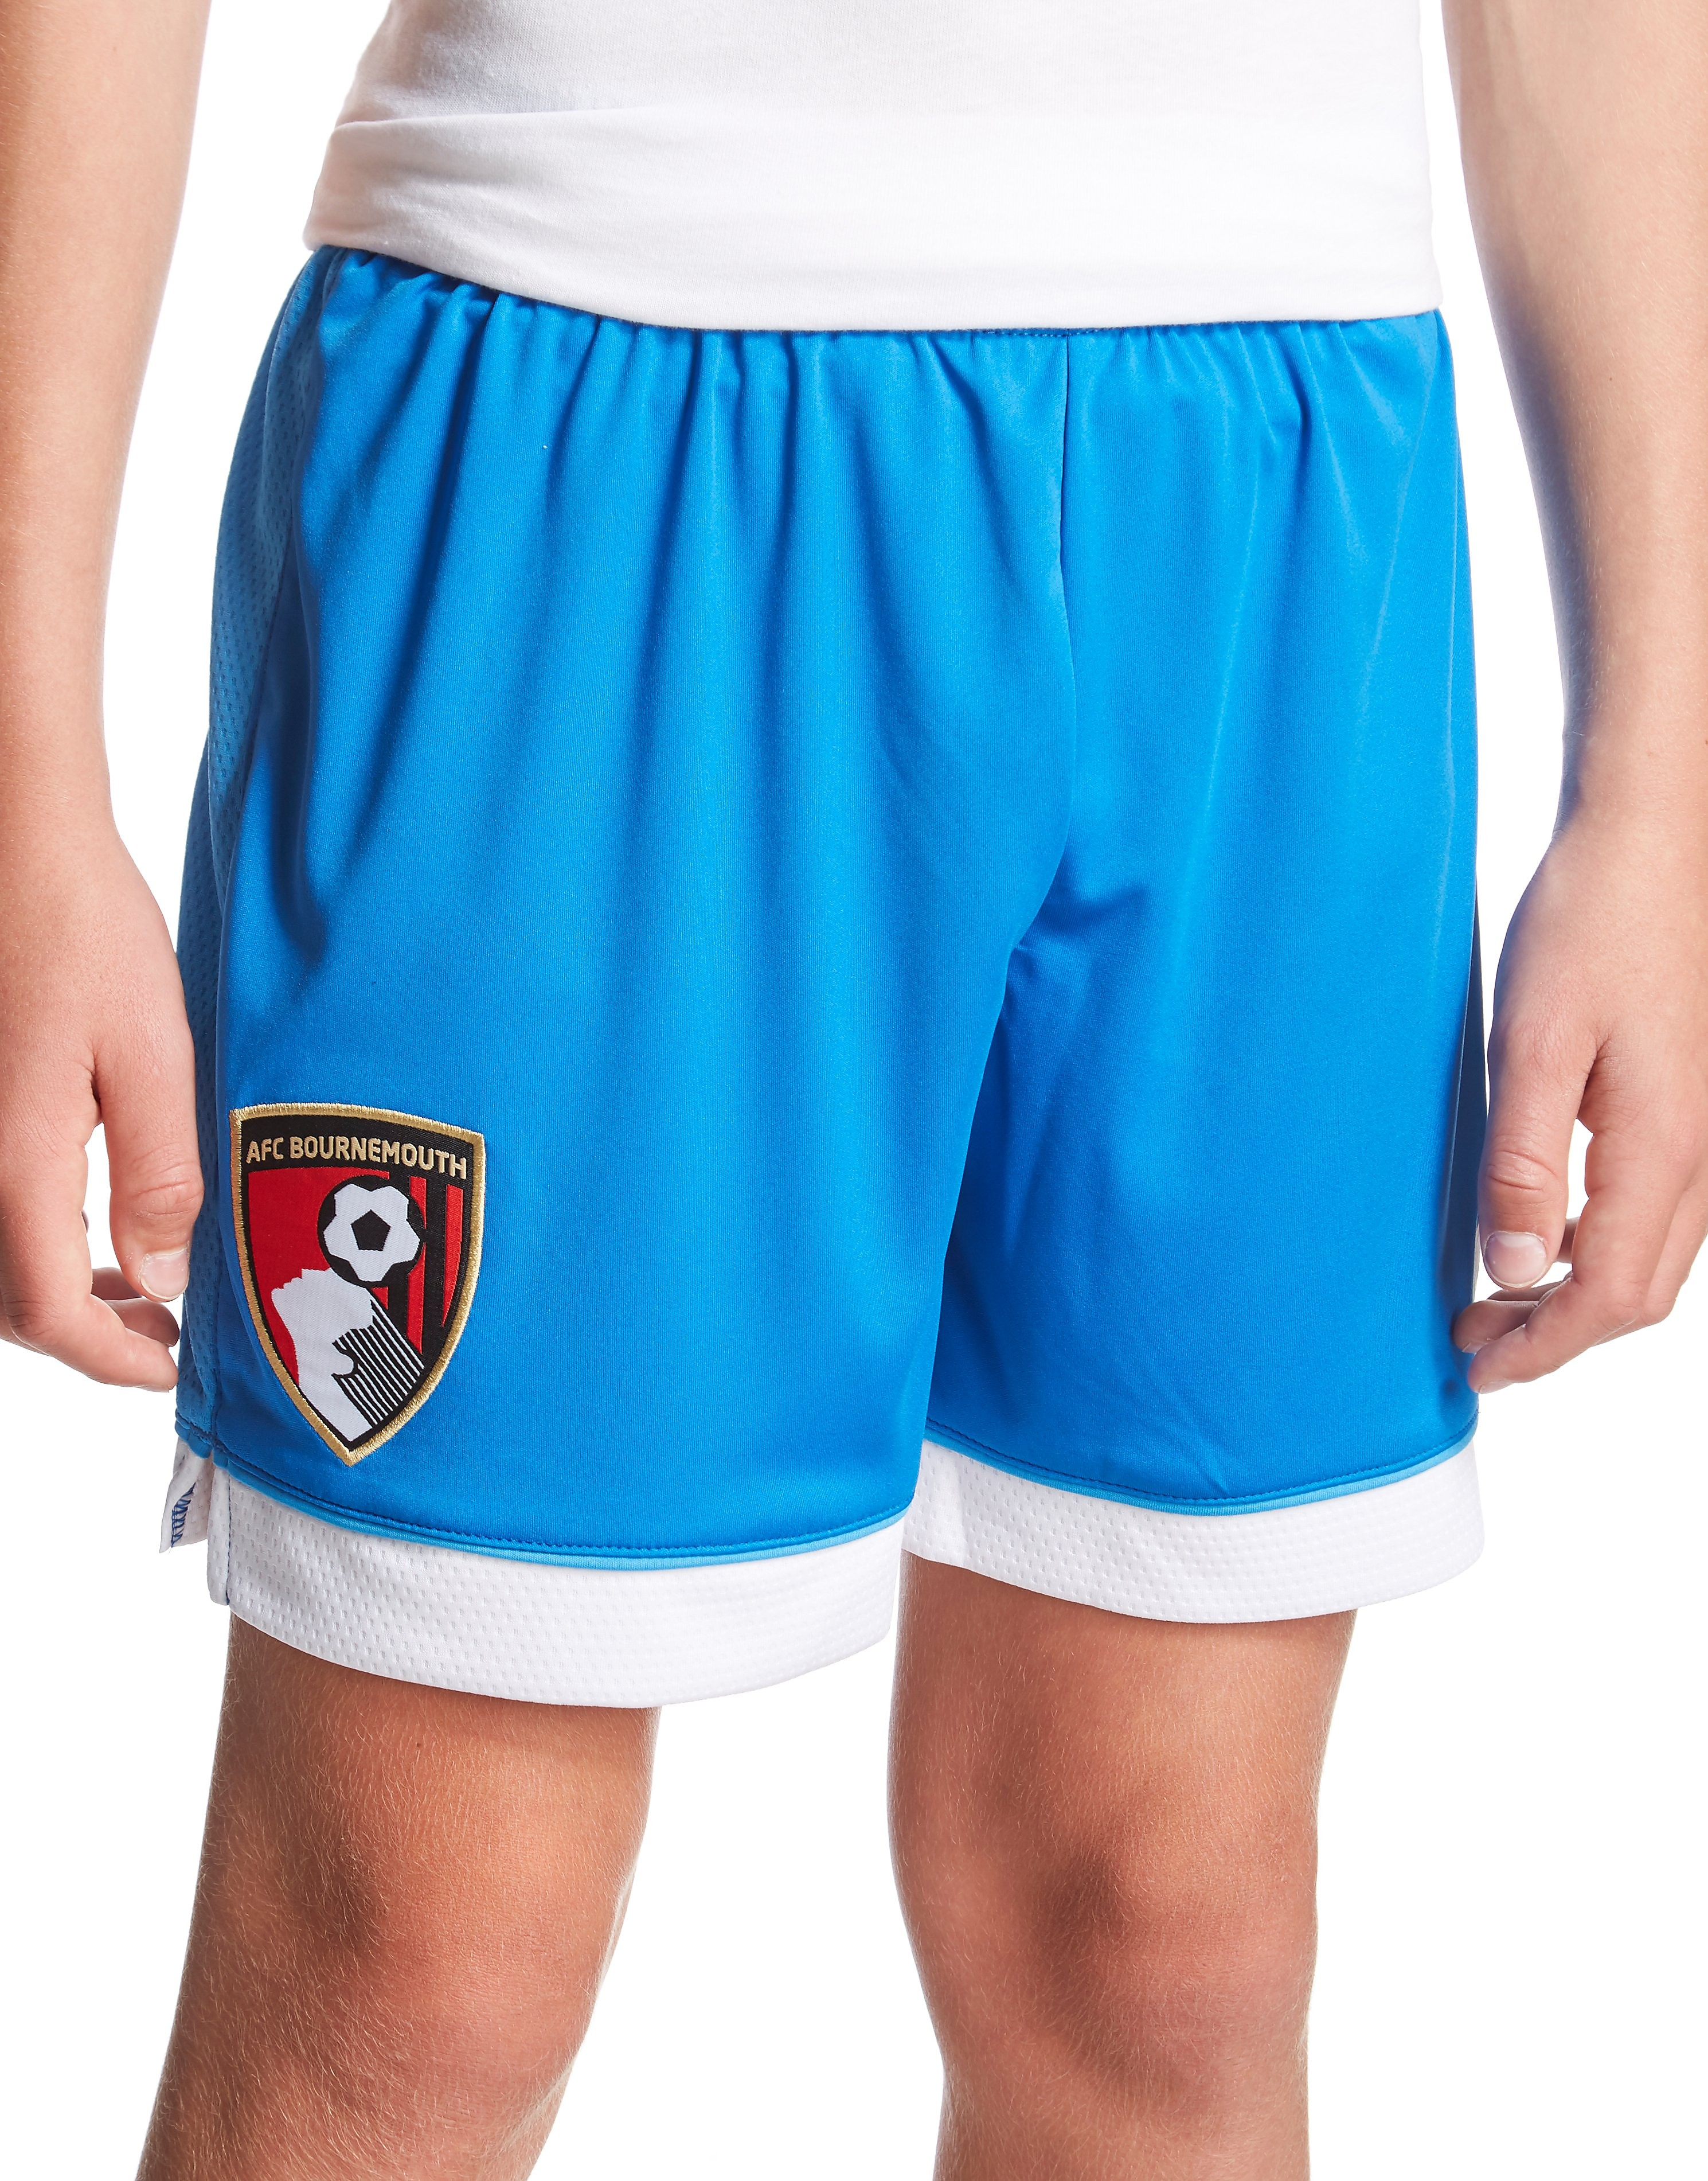 JD AFC Bournemouth 2016/17 Away Shorts Junior